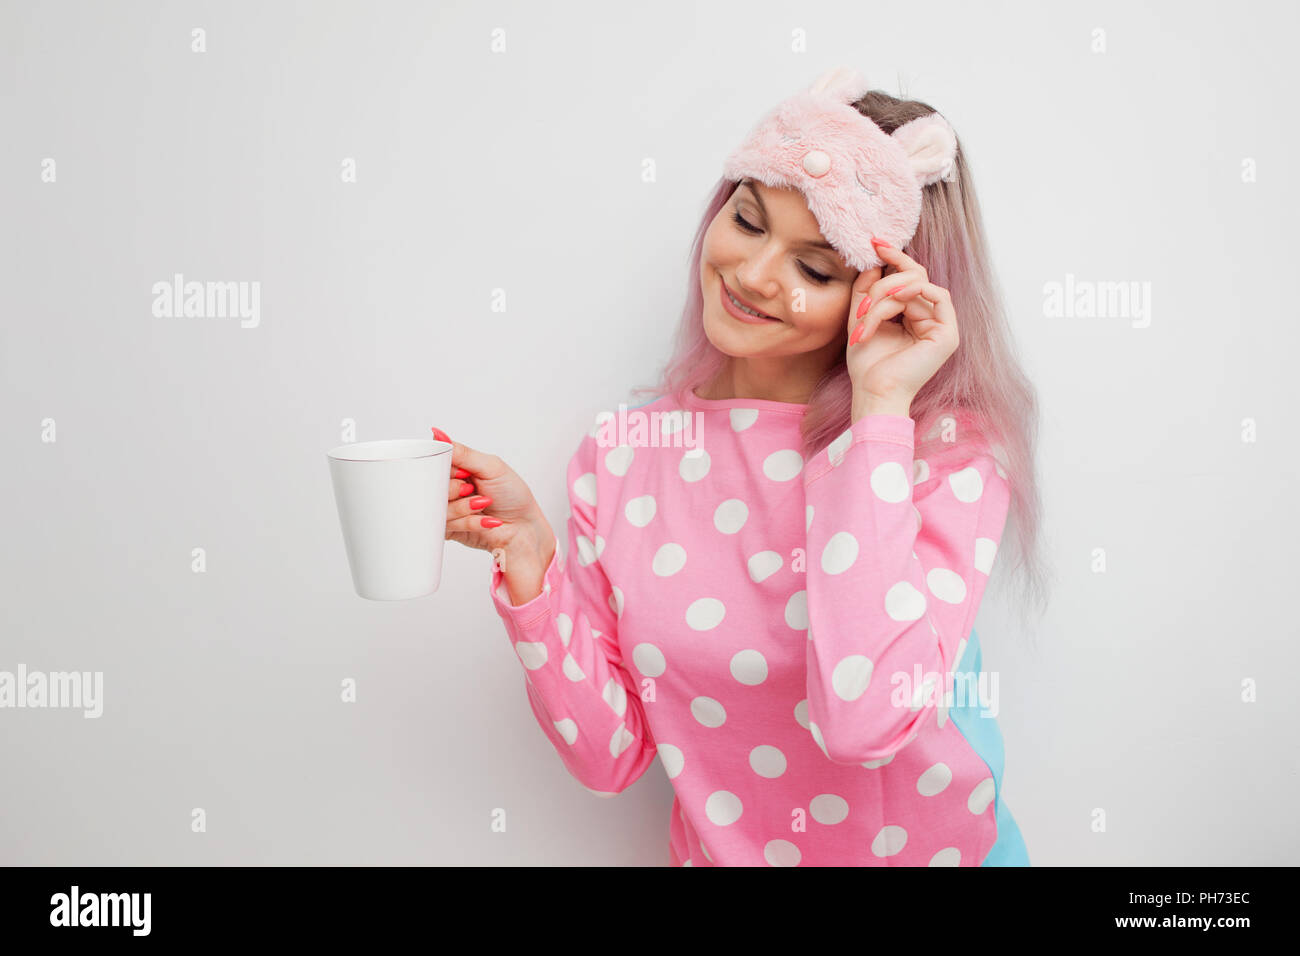 6e12fbdc7206 Smiling young woman drinking morning coffee and happy. Cute girl in pink  pajamas and sleep mask